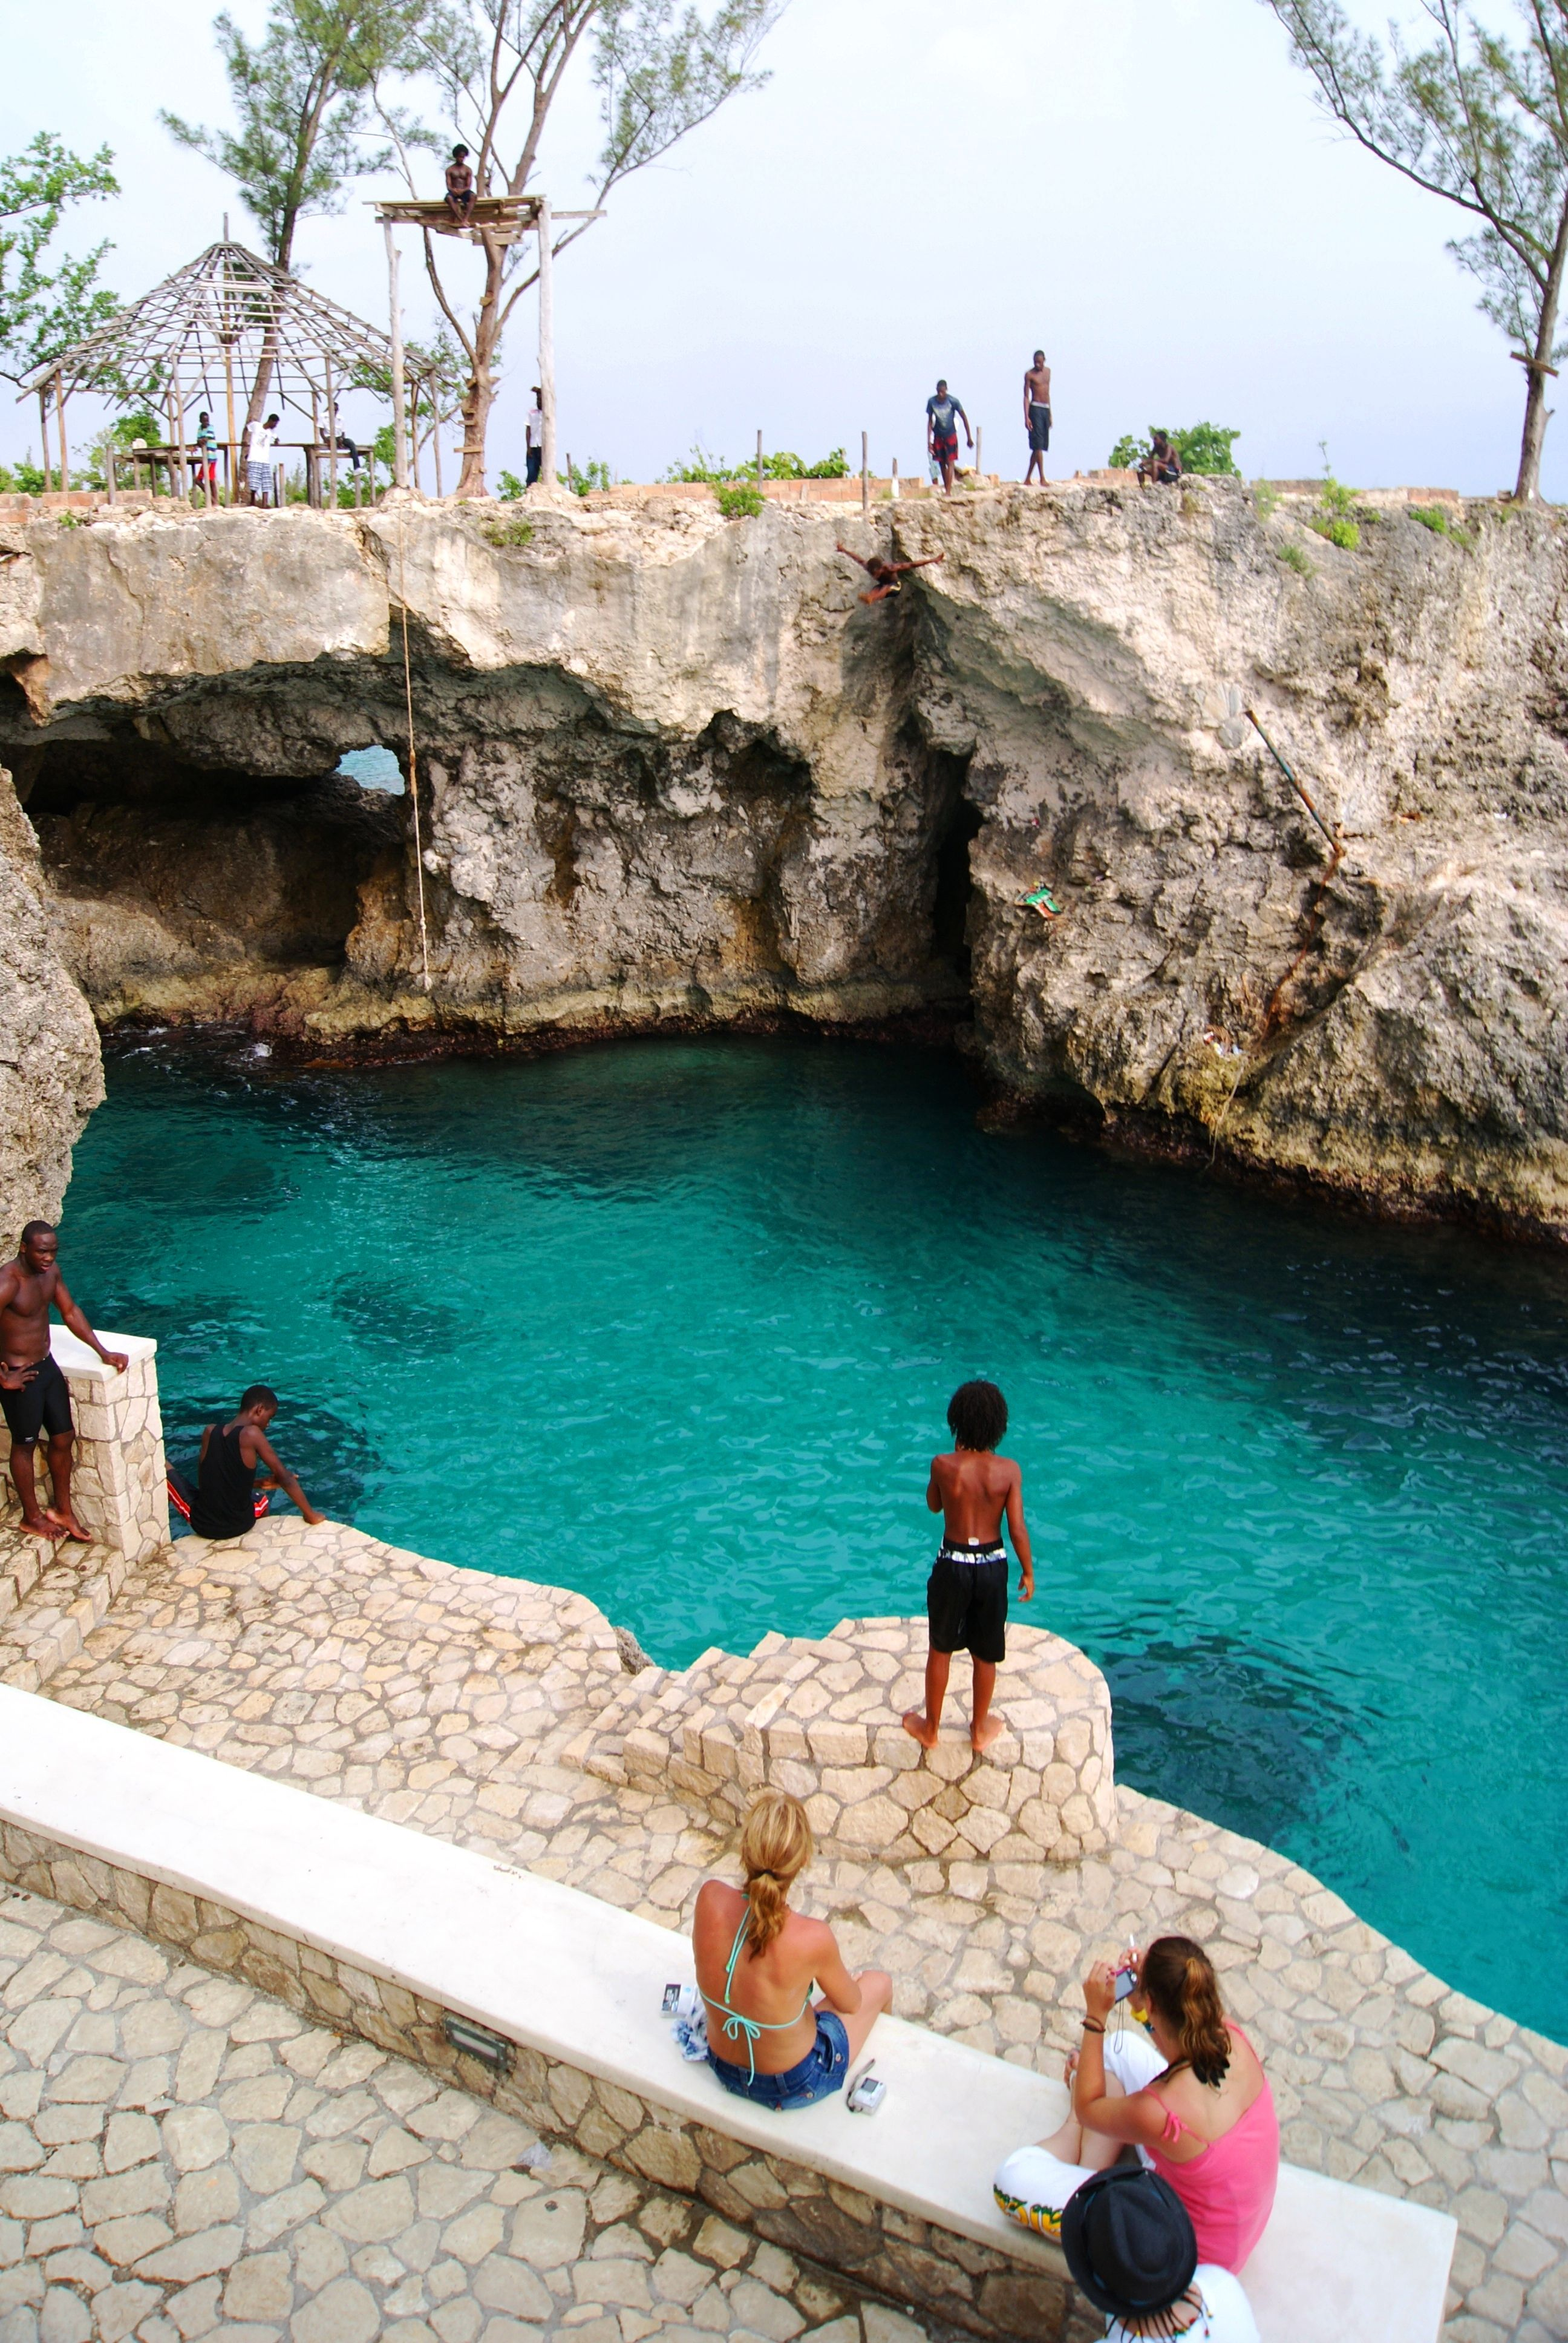 Jamaica, Cliff diving ...Rick's Cafe